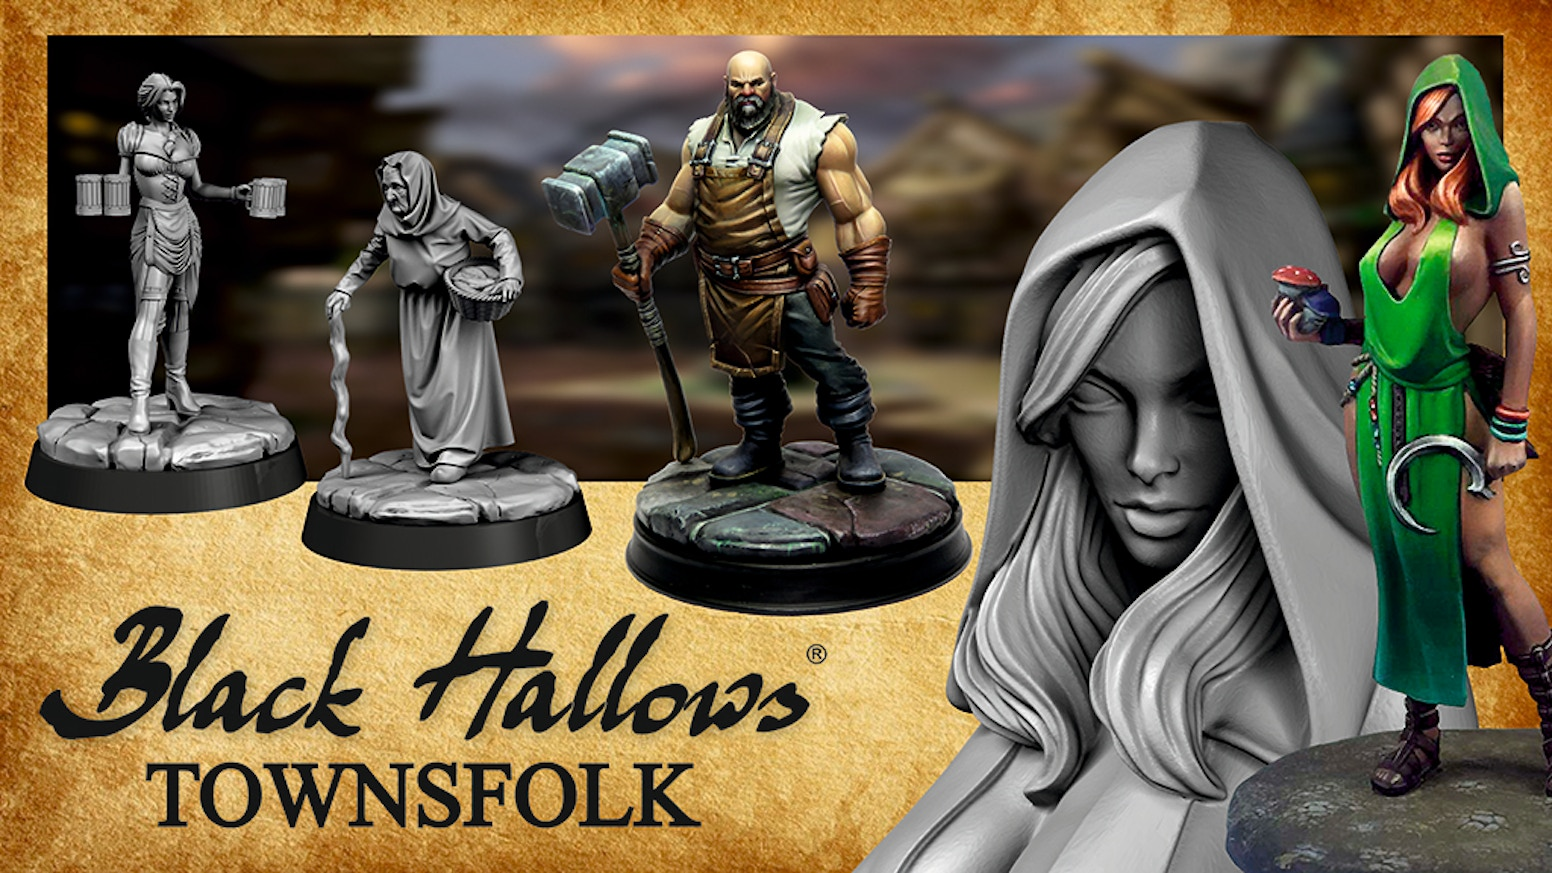 Black Hallows Townsfolk, a range of 28mm or 32mm high quality pewter miniatures for RPG, War Games and Collectors